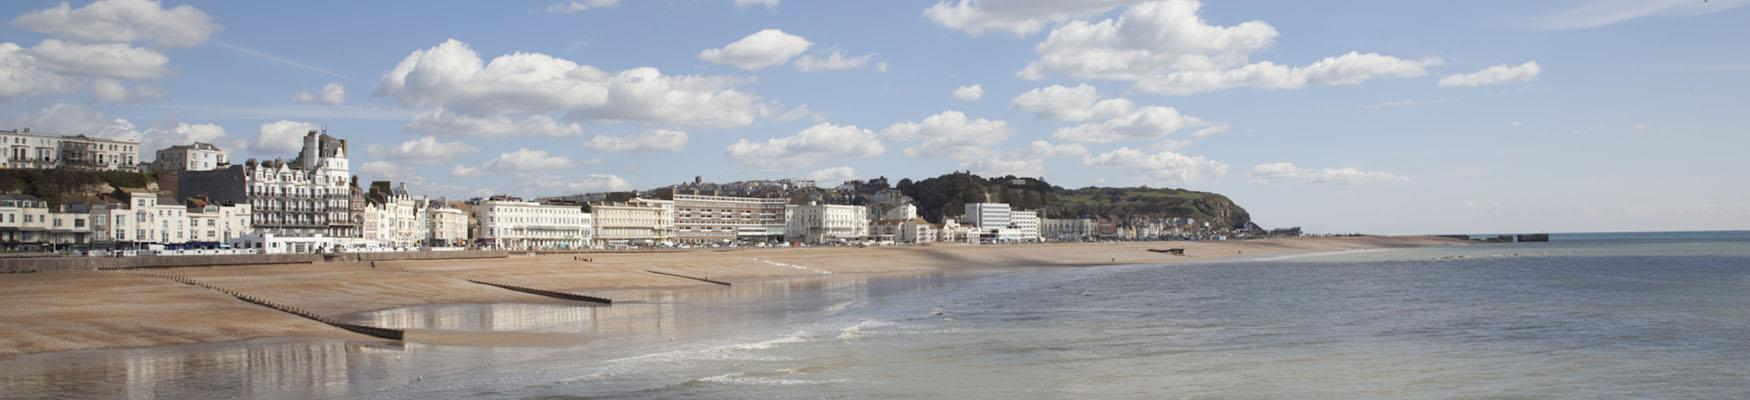 view of Hastings seafront from the pier and east hill